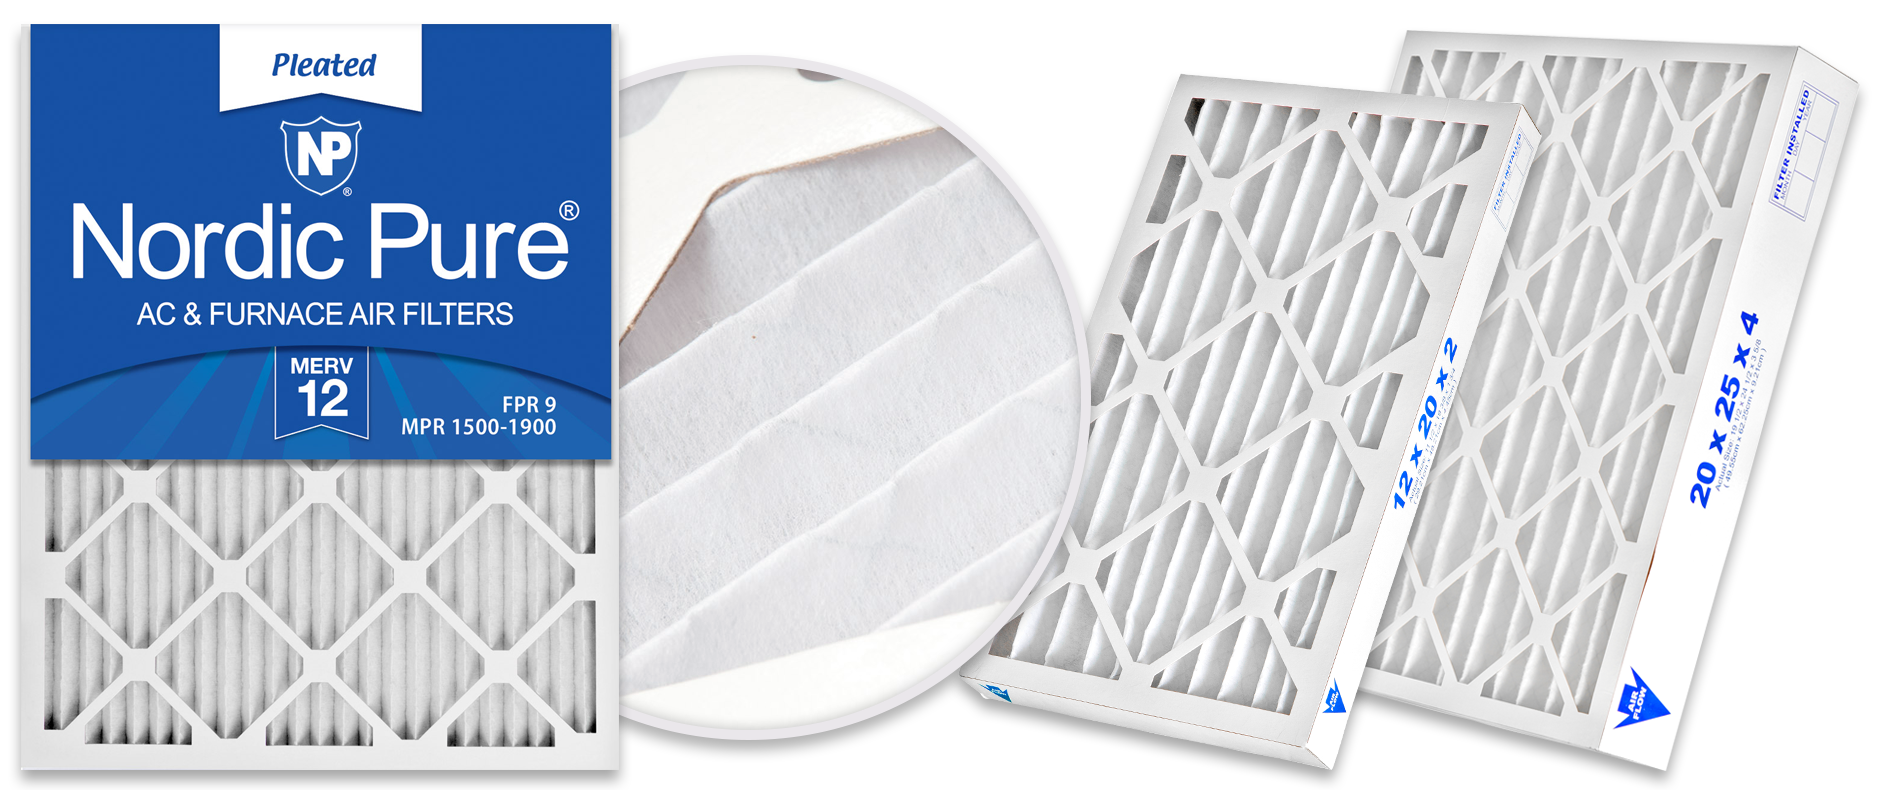 Nordic Pure MERV 12 Pleated Air Filters - best for Pet Owners